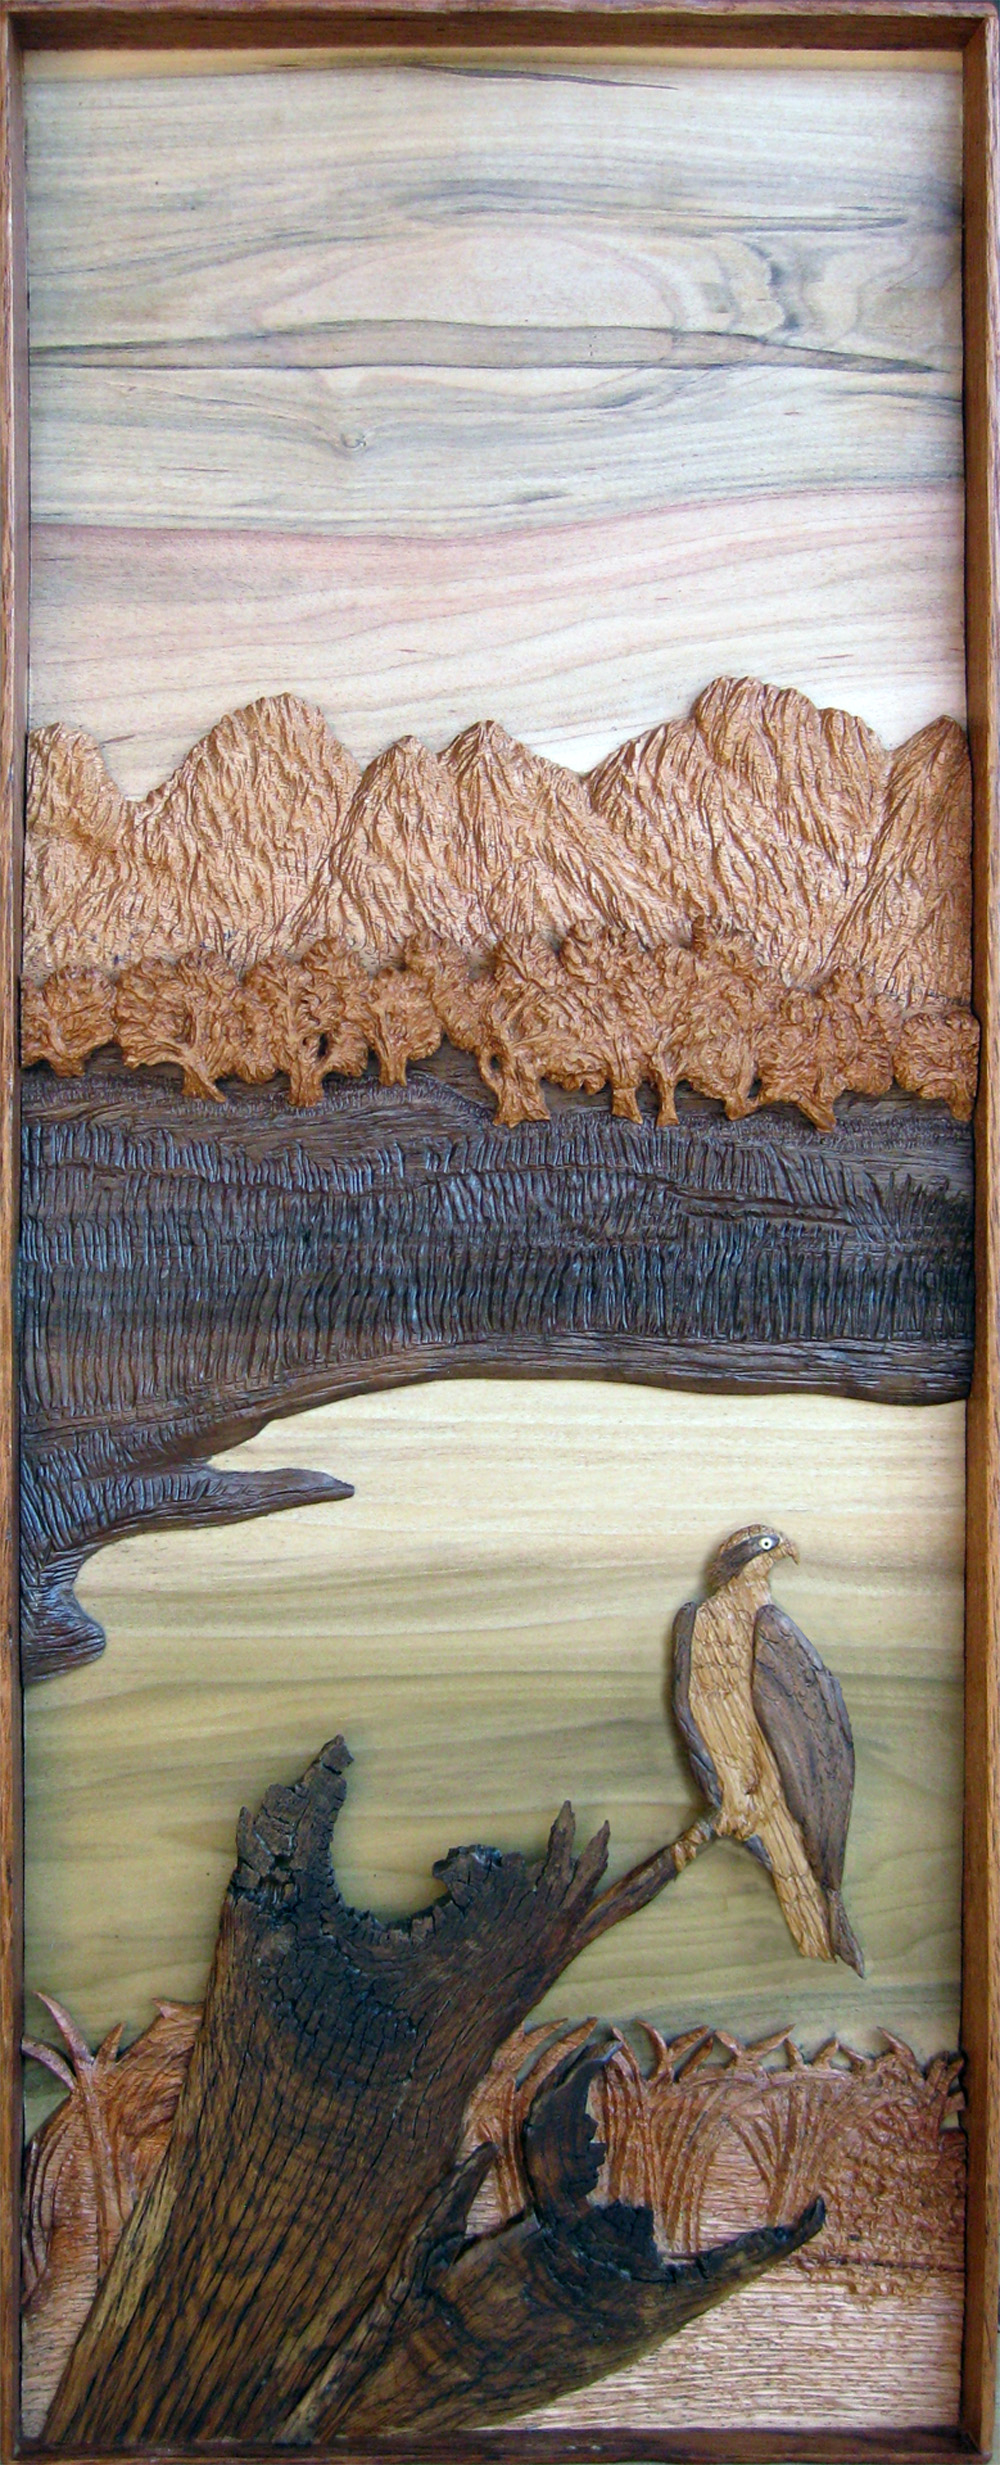 Osprey in layered hardwood relief sculpted by Francis Koerber